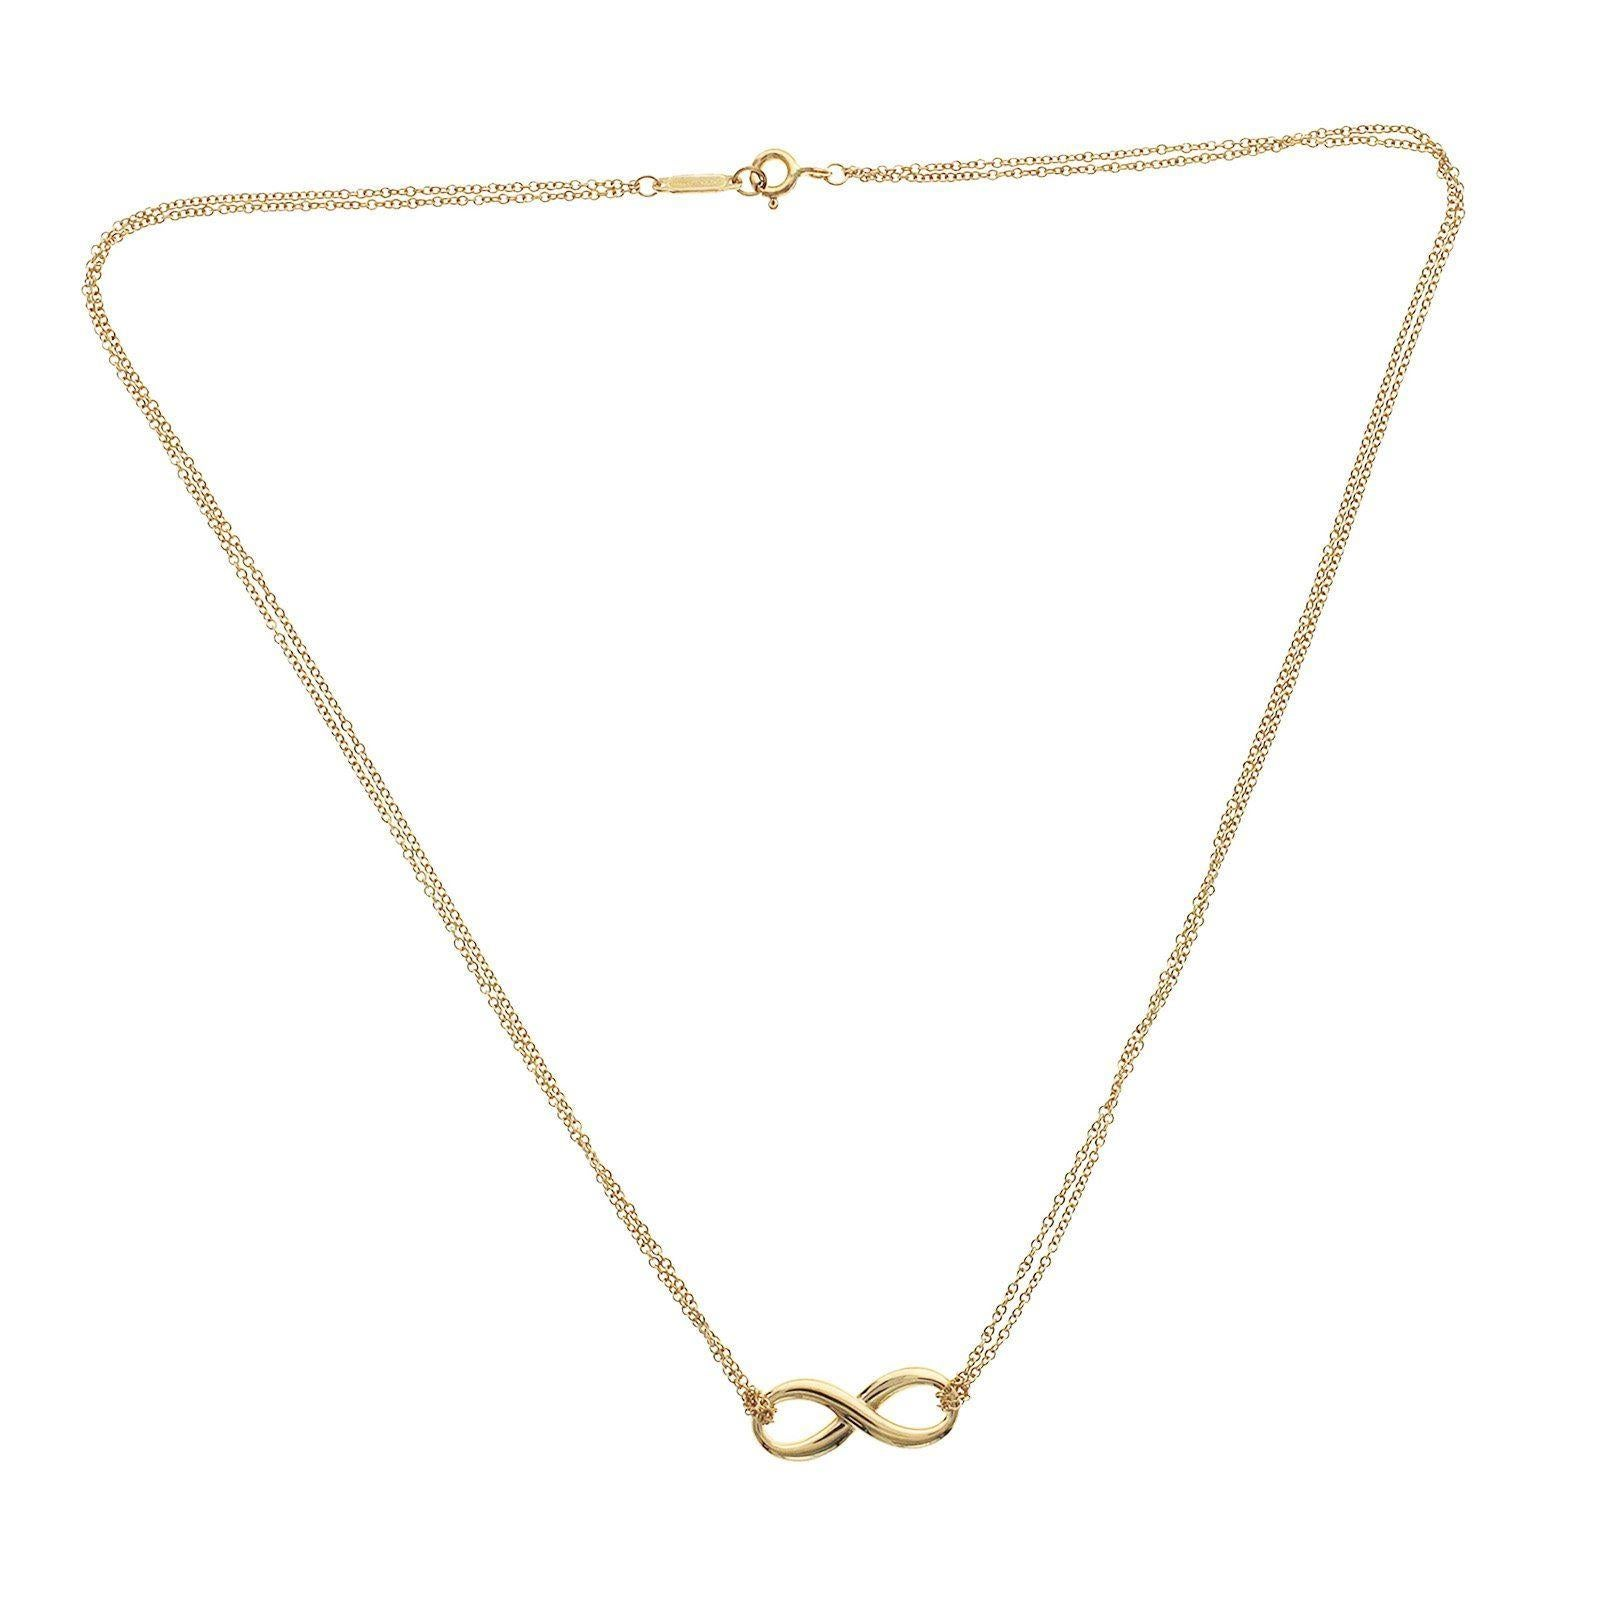 bce085978 Tiffany & Co. Necklaces - 306 For Sale at 1stdibs